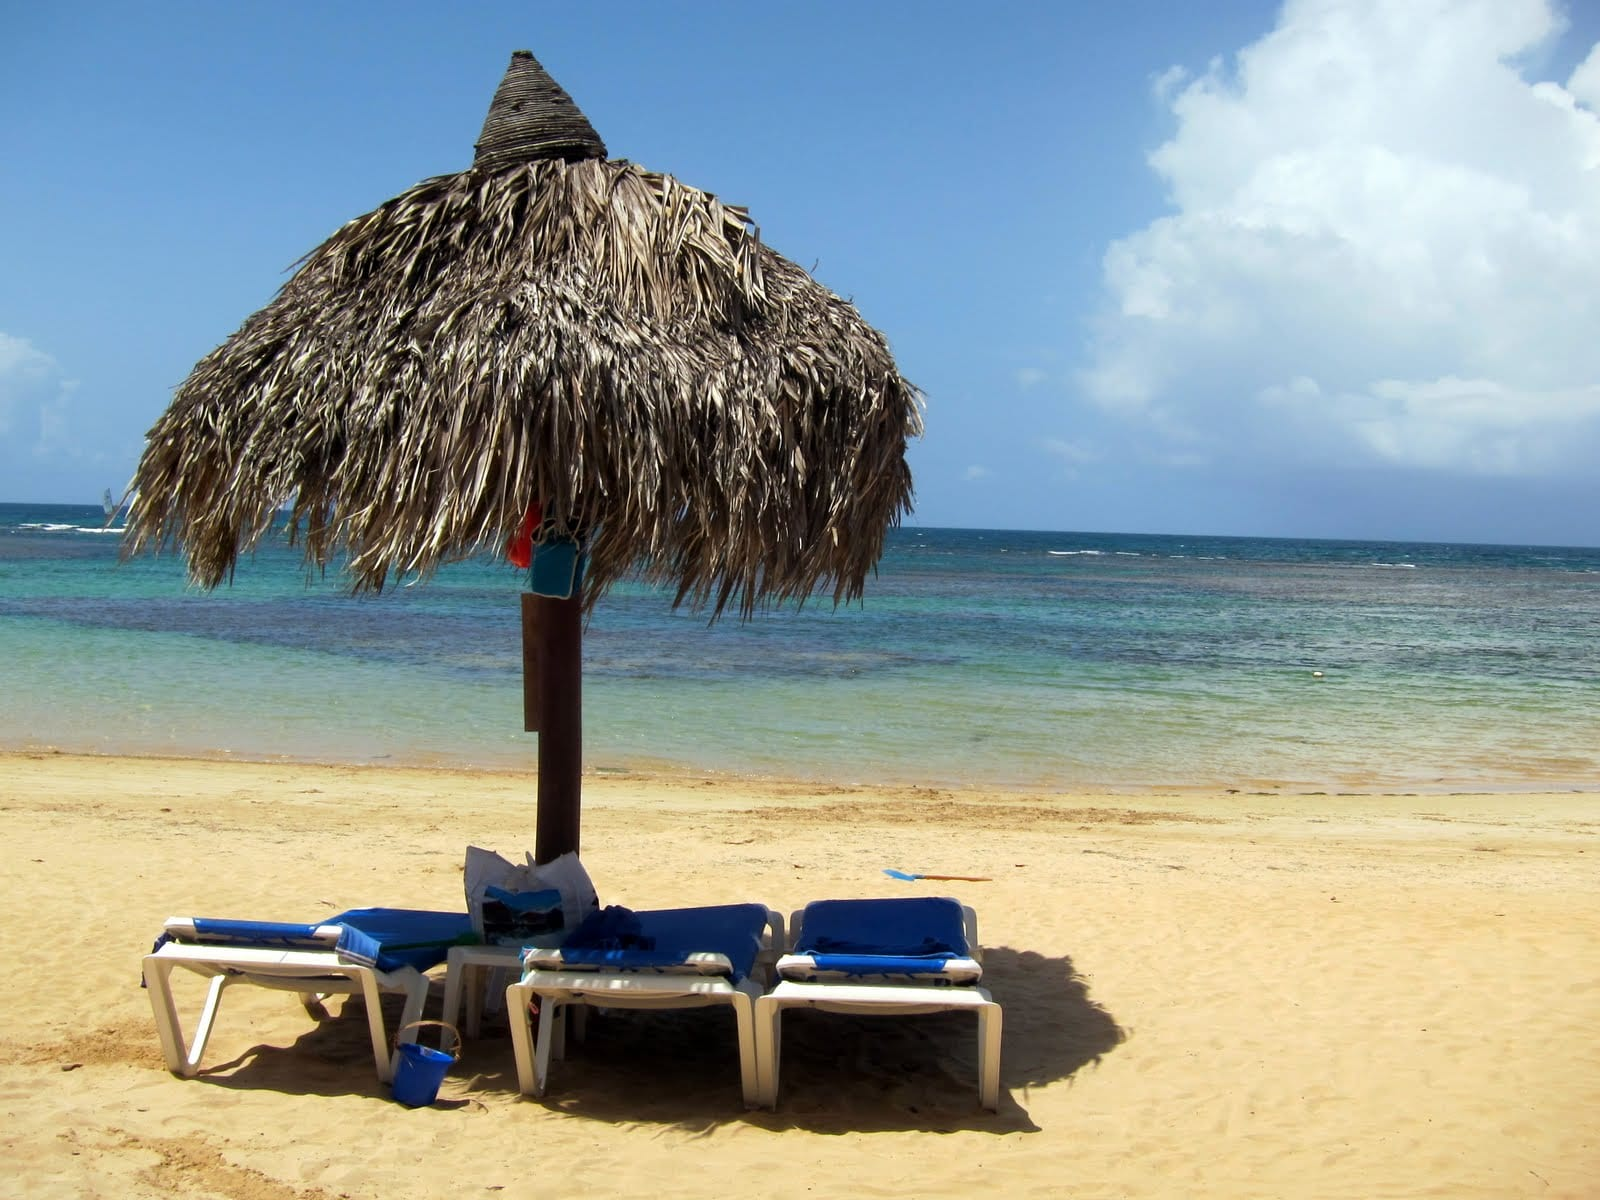 The ideal beach scene on Samana's El Portillo Beach, Dominican Republic.